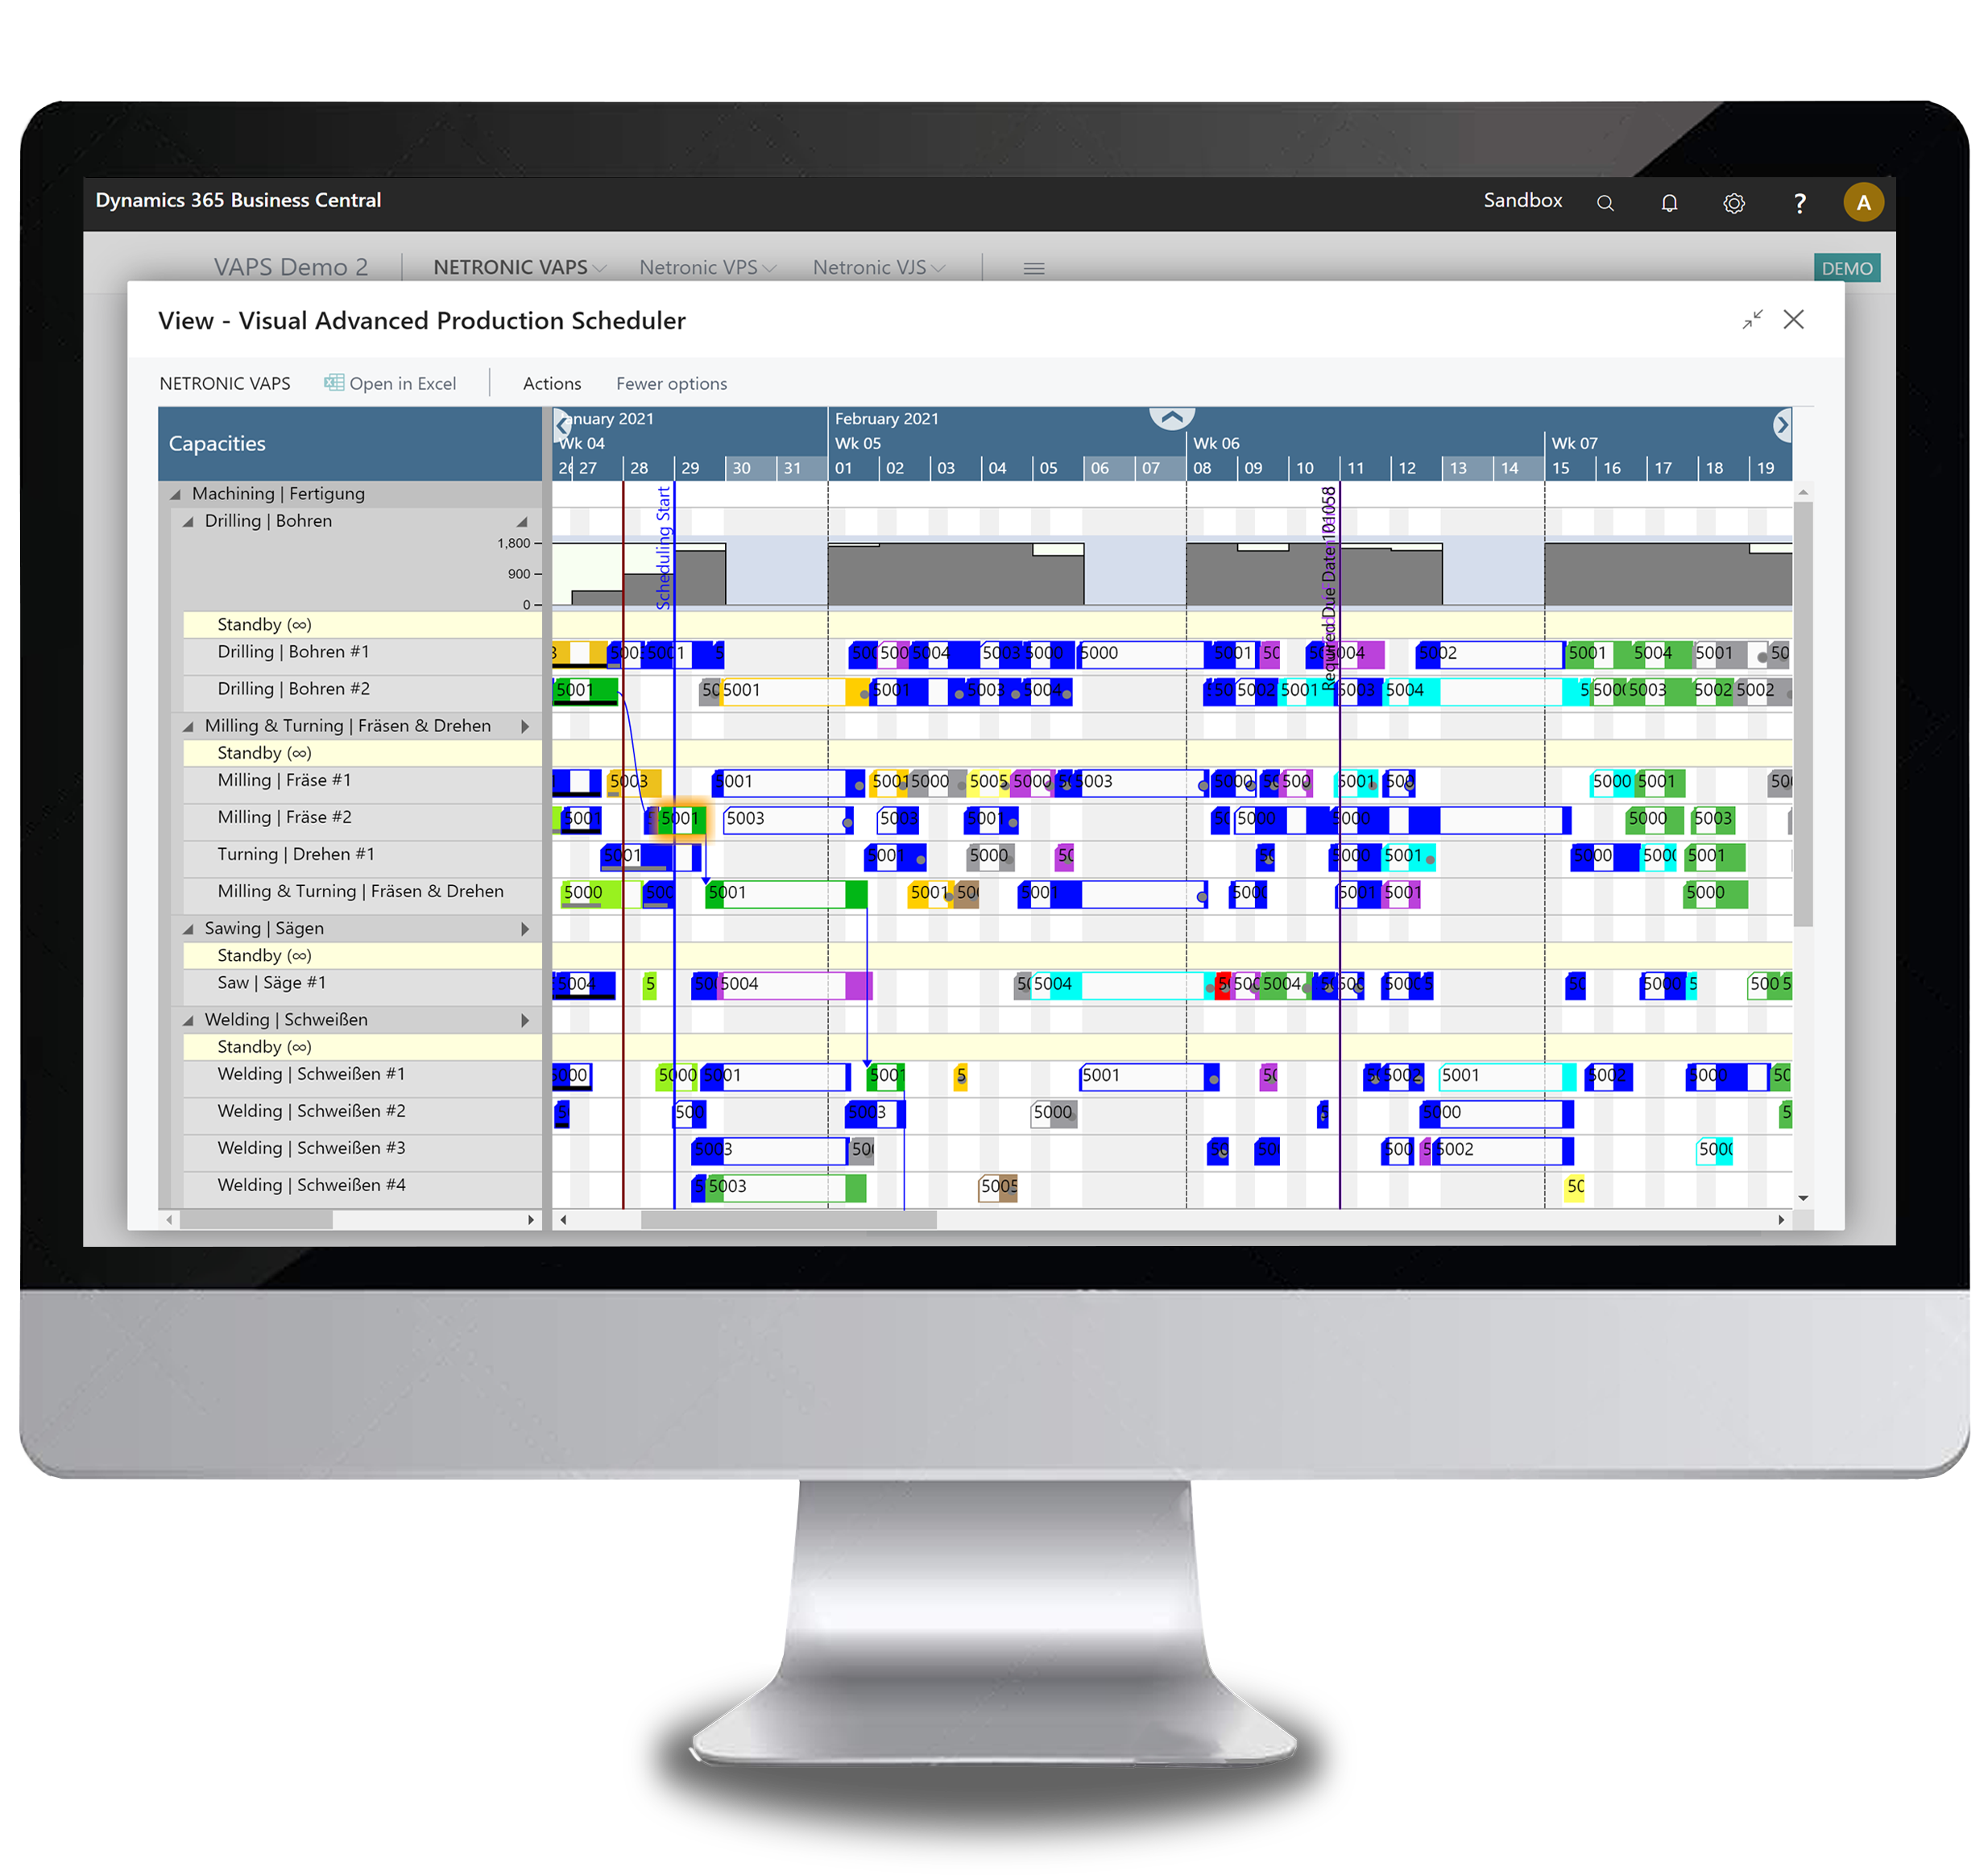 Visual Advanced Production Scheduler - finite capacity scheduling for Dynamics 365 Business Central